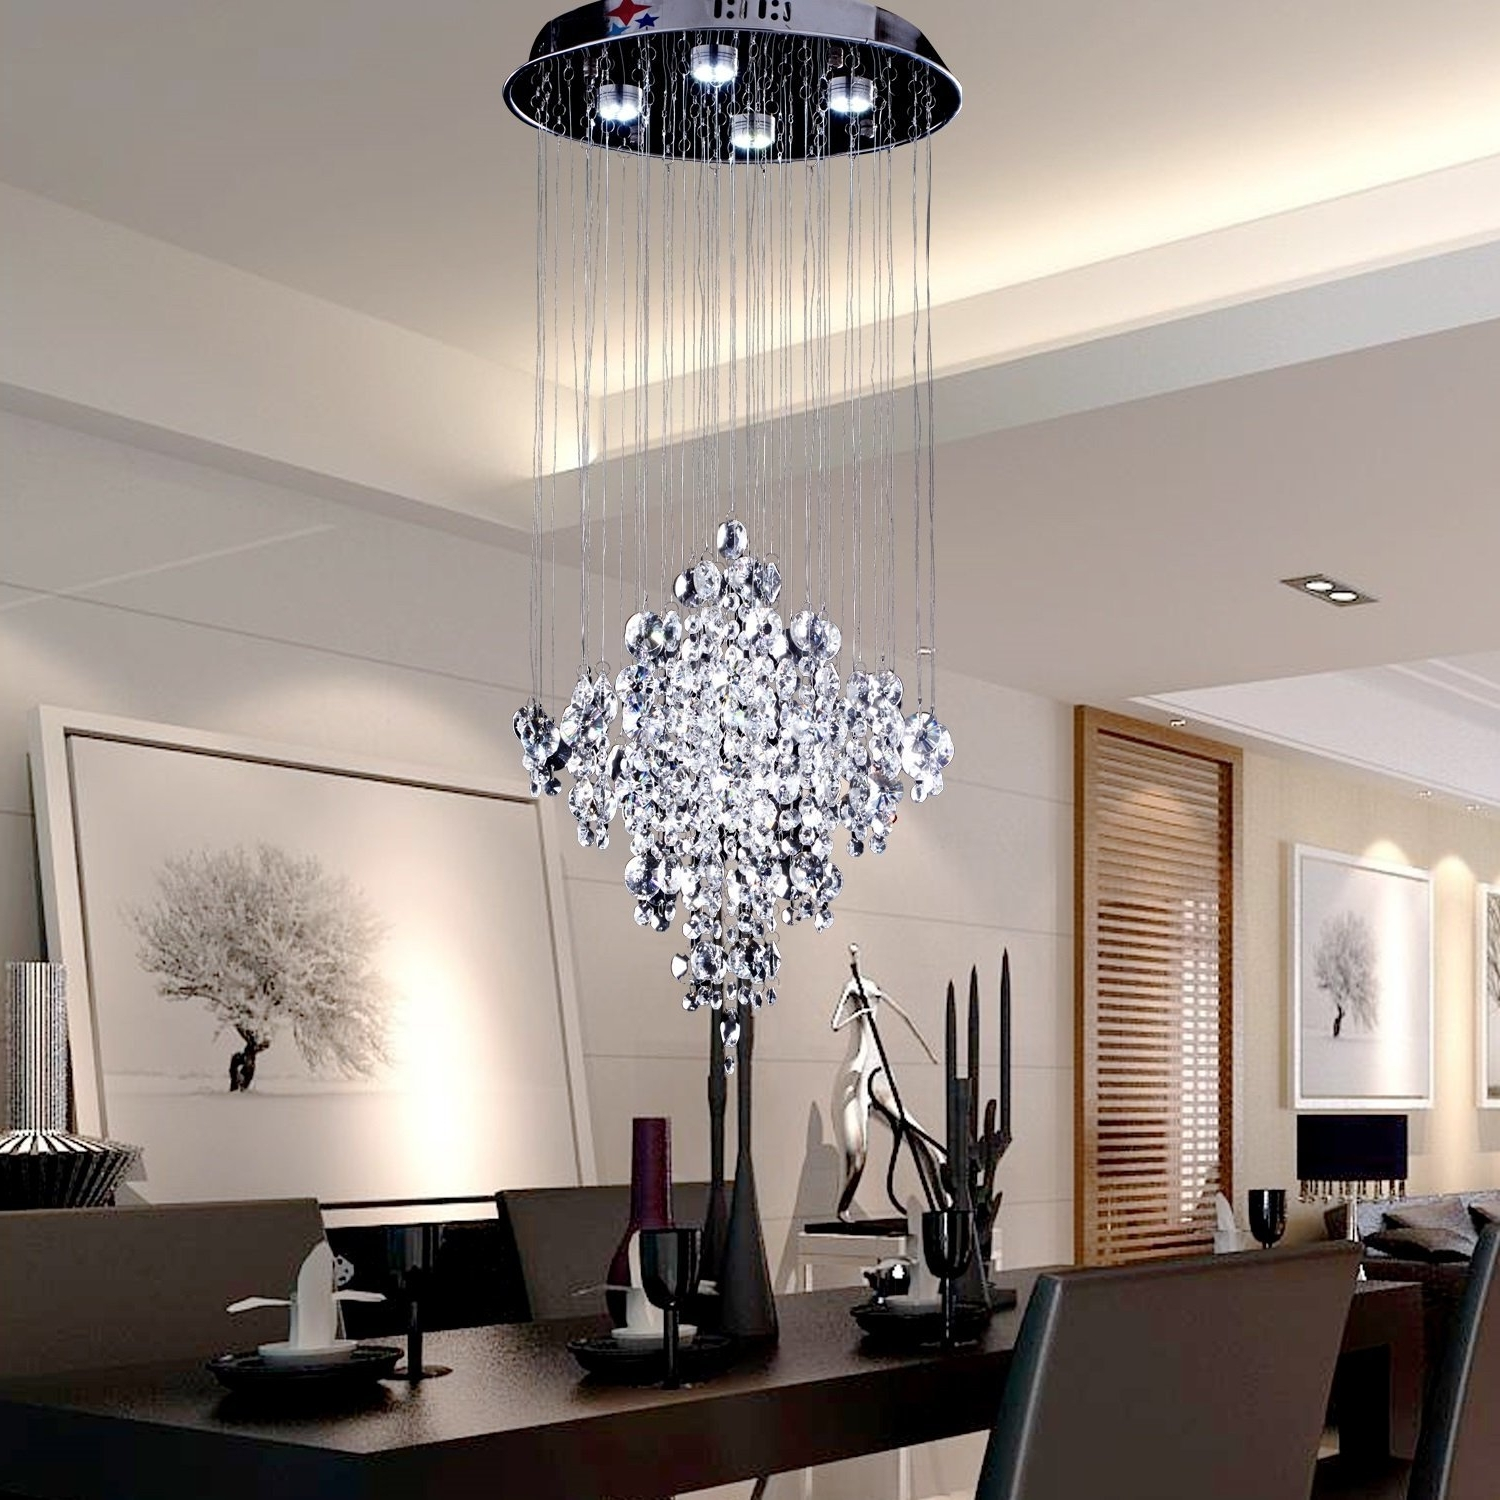 Chandeliers Design : Wonderful Crystal Contemporary Chandelier With Regard To Latest Contemporary Chandeliers (View 3 of 15)